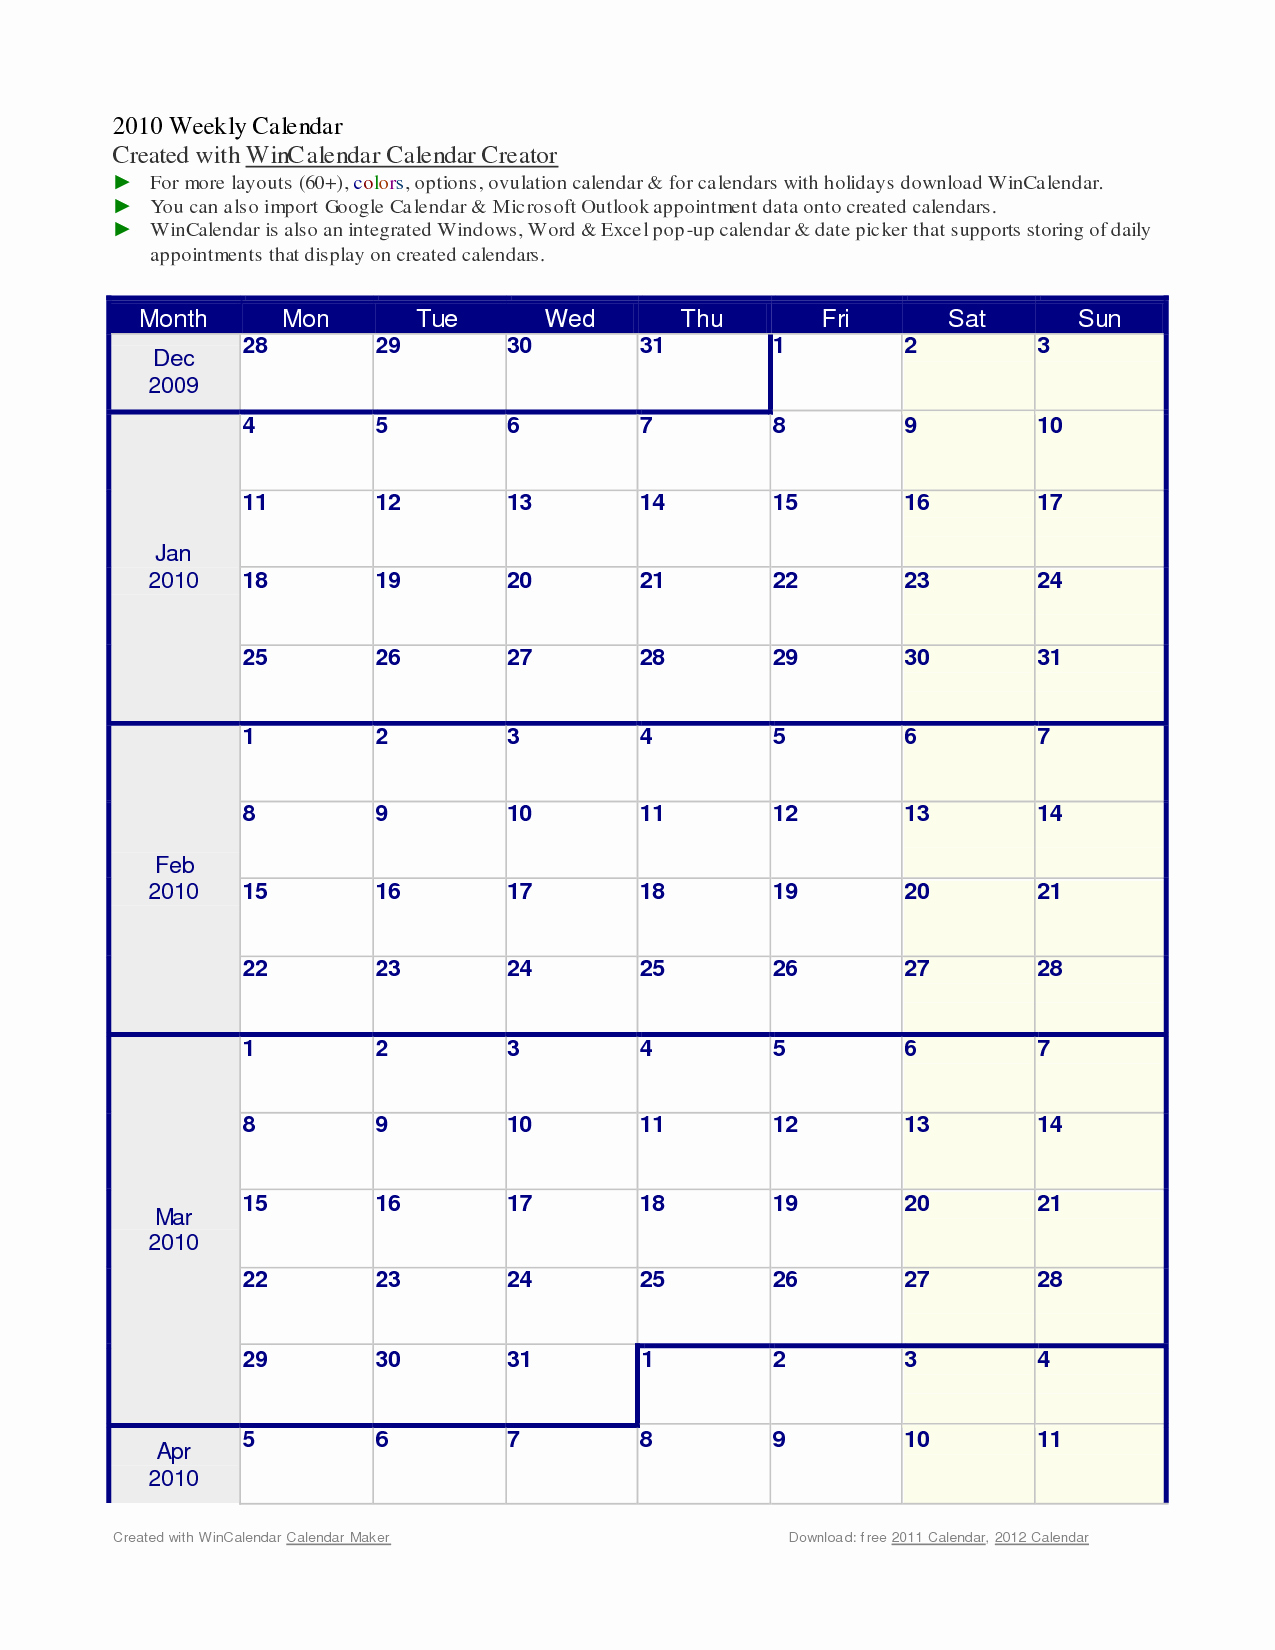 034 Weekly Hourly Calendar Template Word Ideas 20Appointment inside Word Calendar Creator